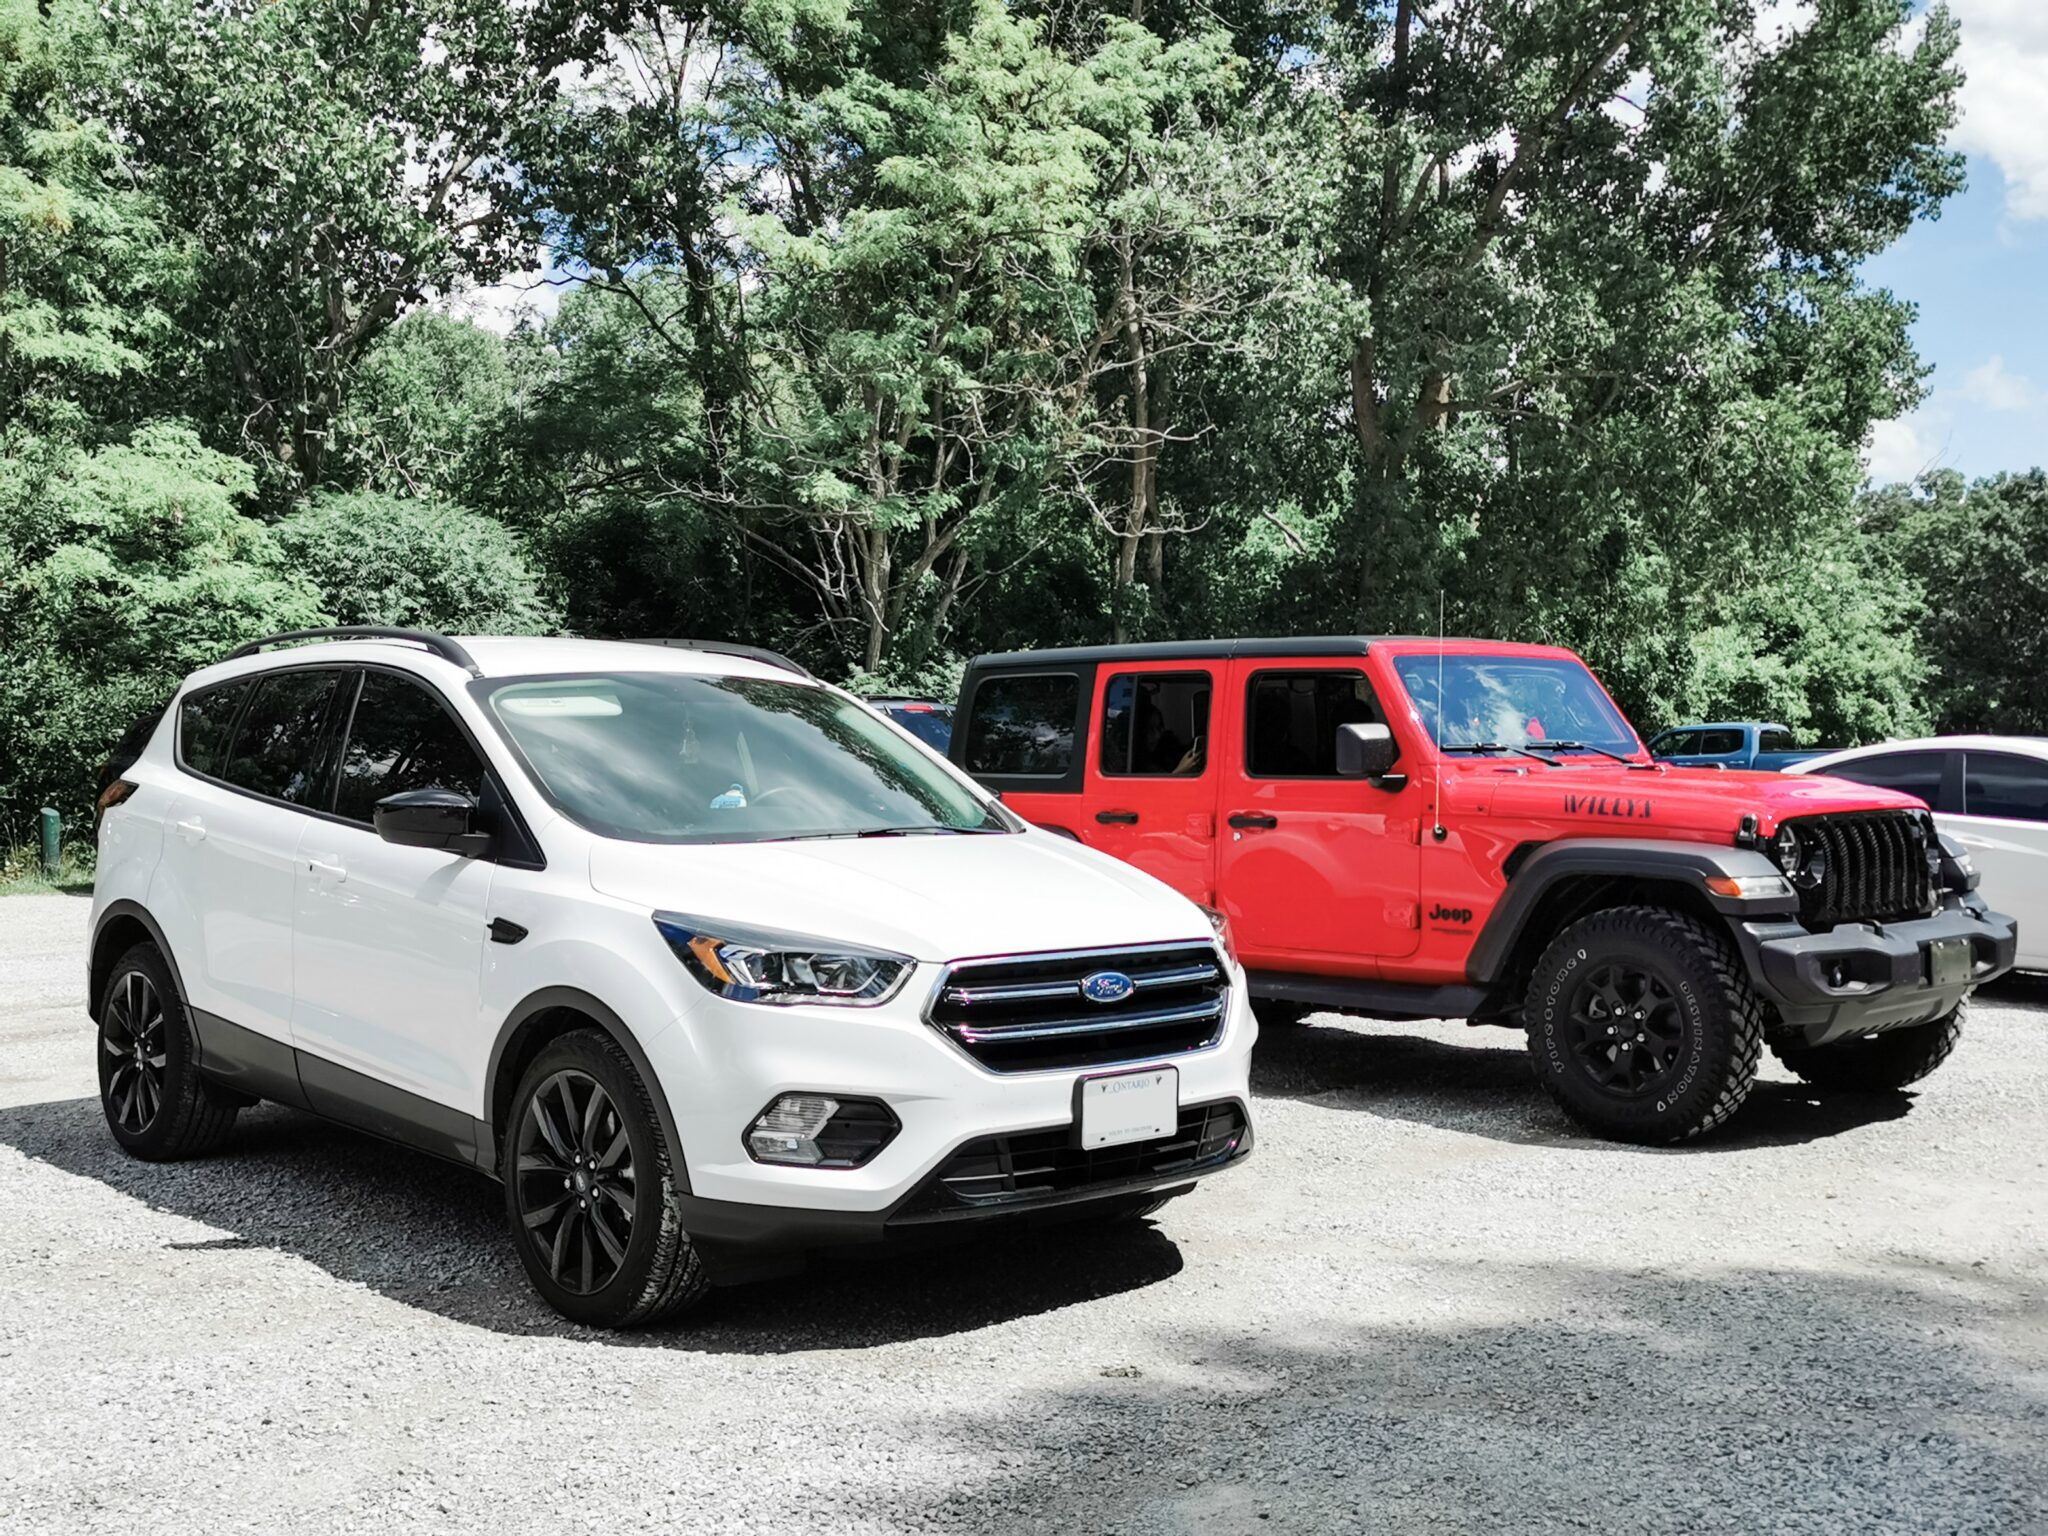 A Ford Escape and a Jeep Wrangler parked at one of Sarnia's beaches.  The jeep is equipped with ProClip USA Jeep accessories.